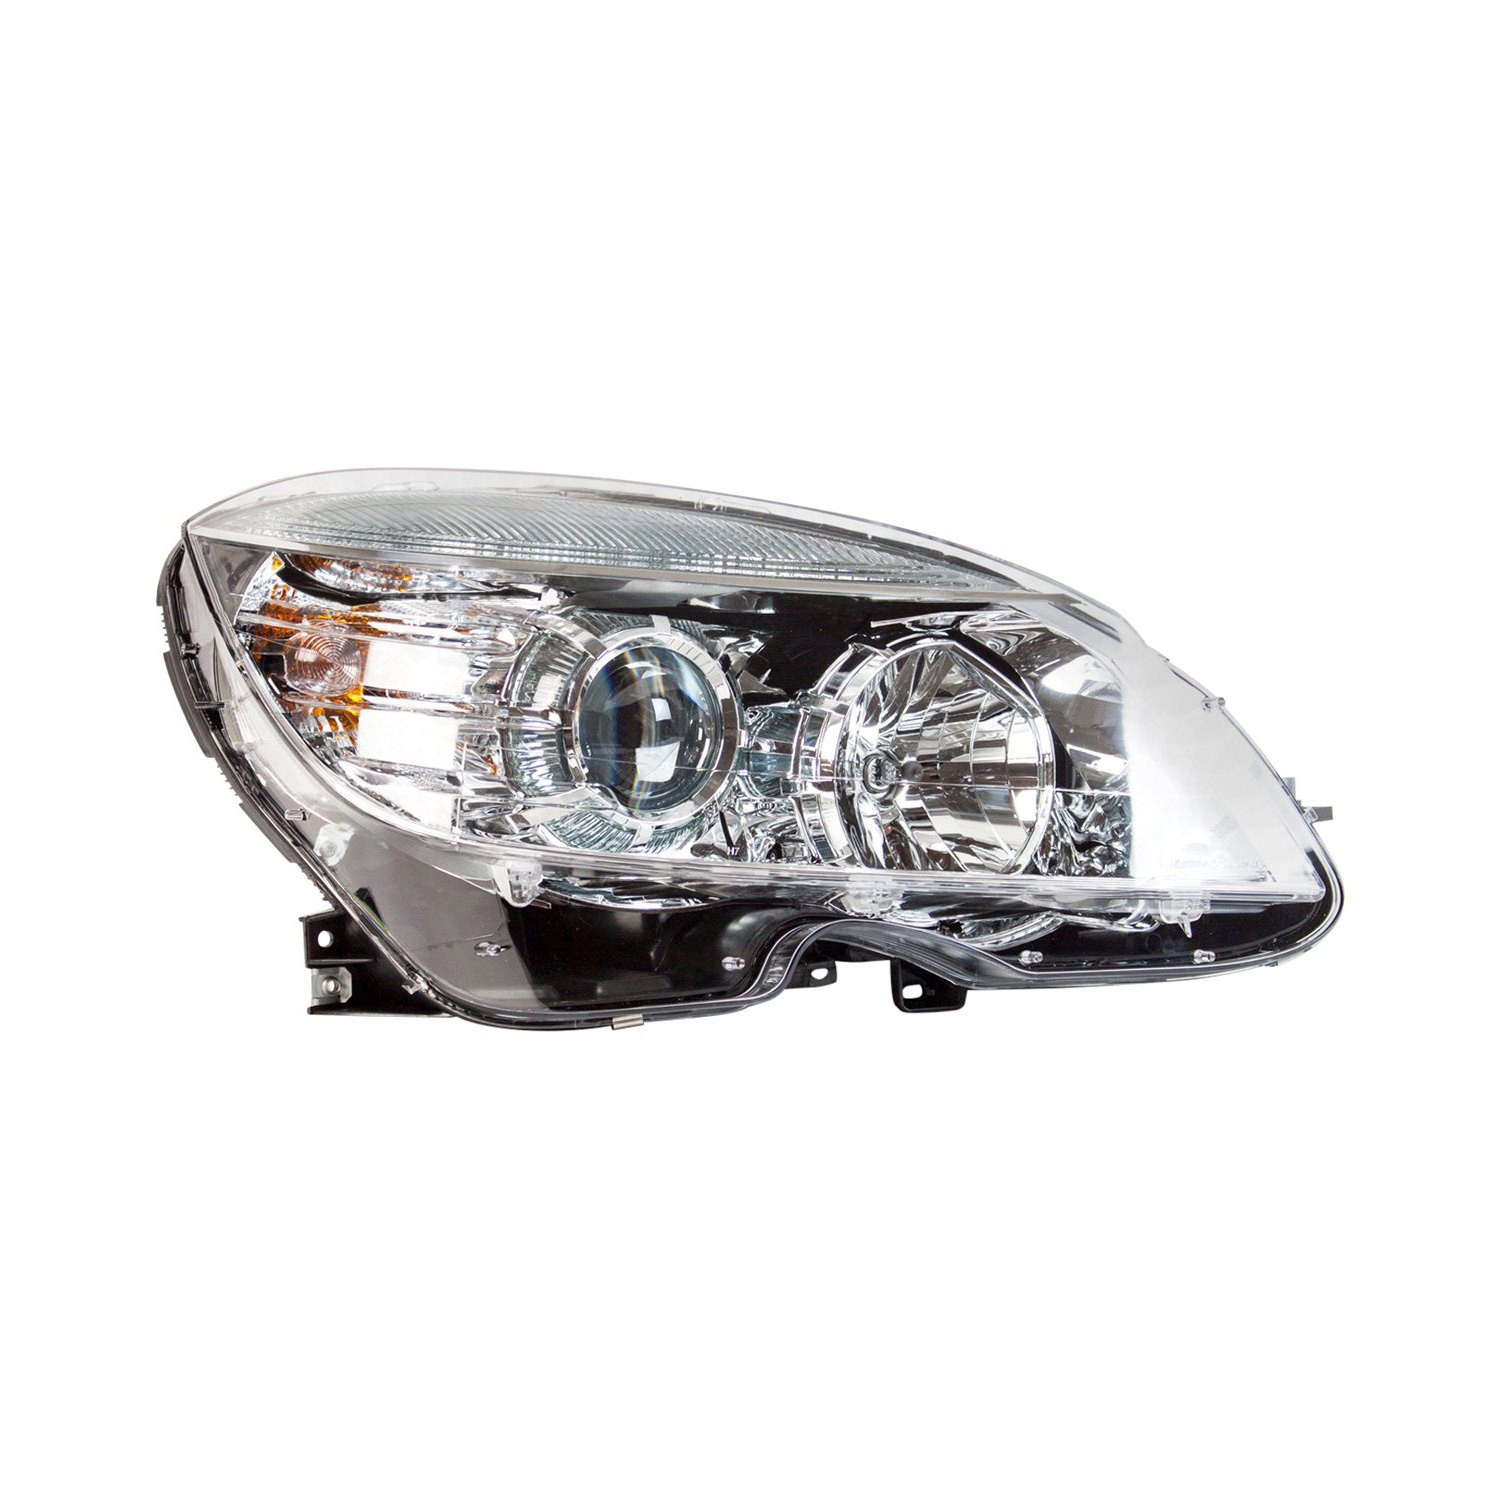 Service manual headlight removal 2009 mercedes benz c for Mercedes benz c300 headlights